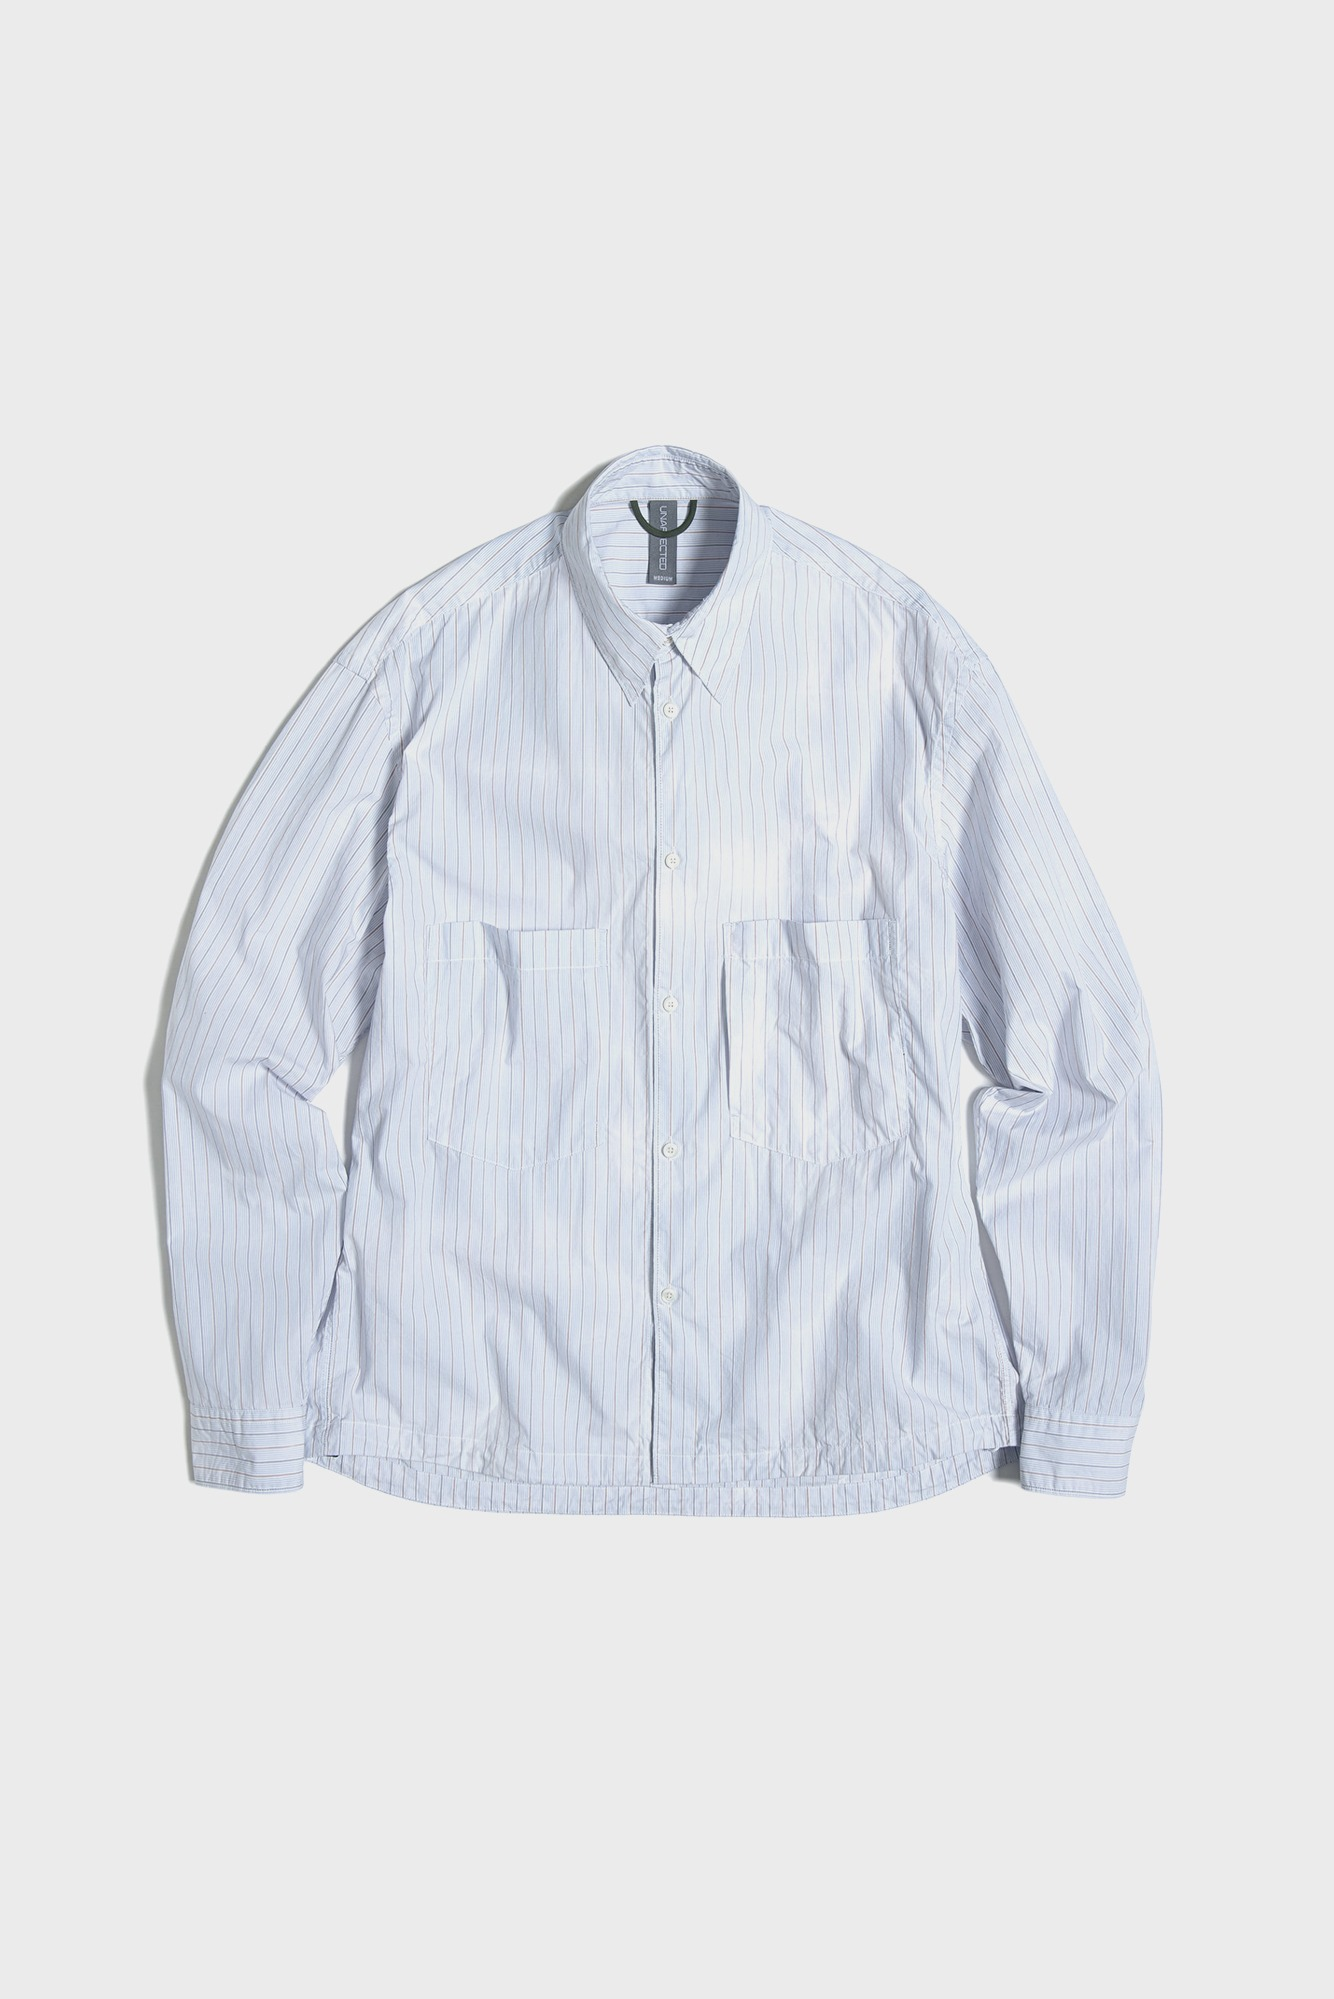 "UNAFFACTED Oversized Shirt ""Cloudy Blue Stripe"""